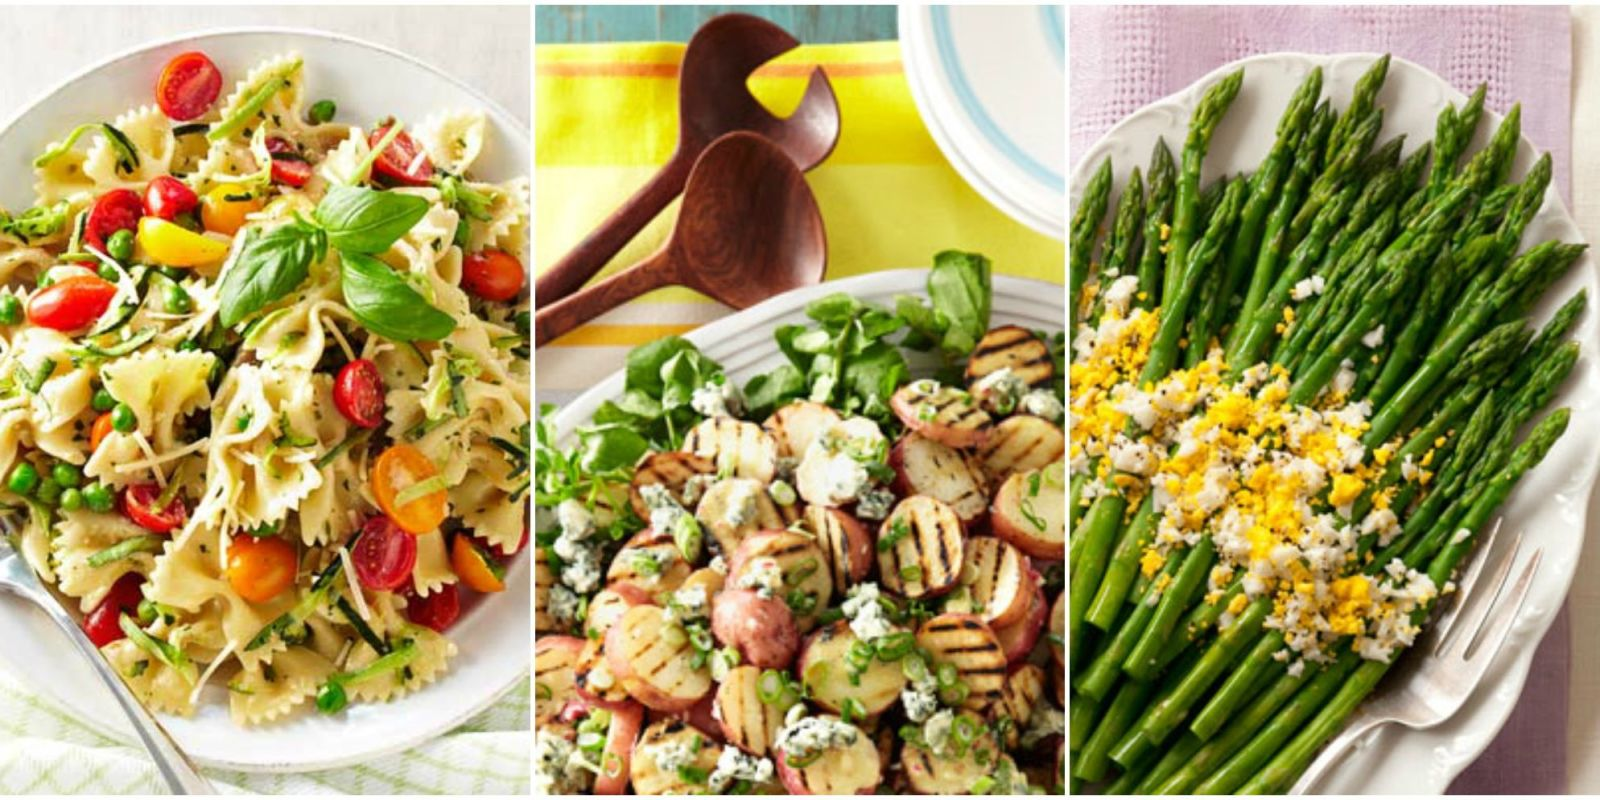 18 memorial day side dishes best sides for memorial day for What to serve at a bbq birthday party